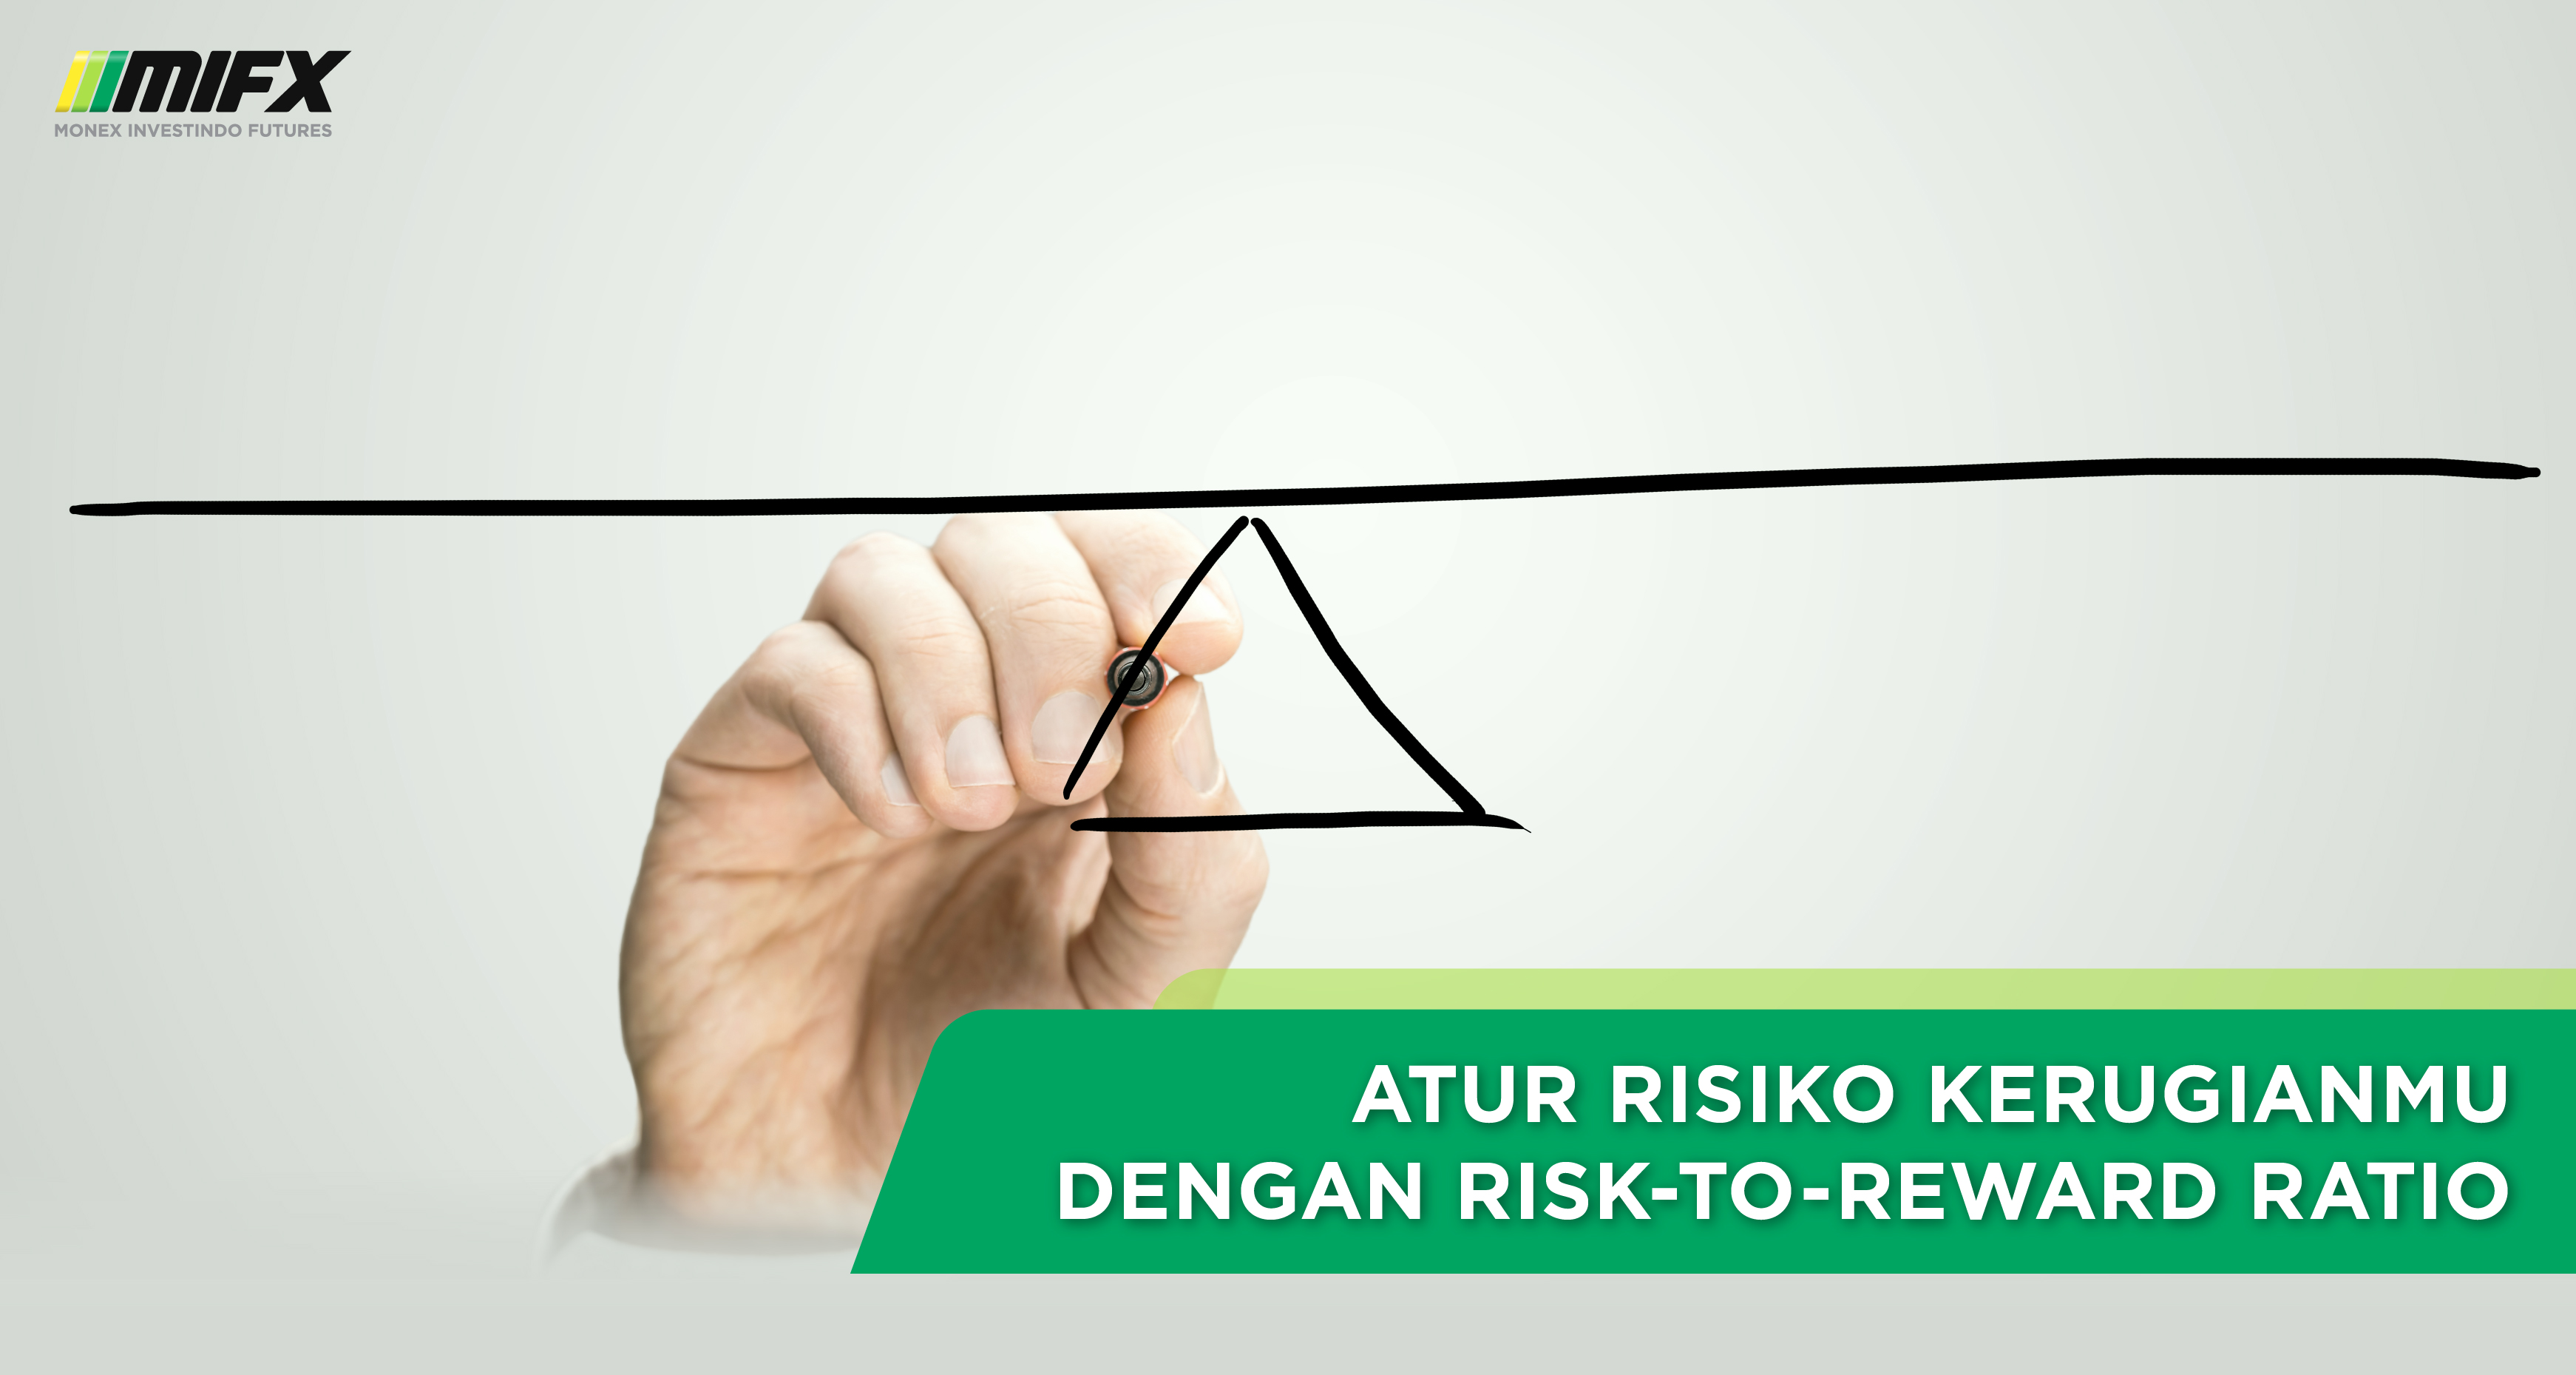 -article-01-risk-to-reward-ratio1593504923.jpg